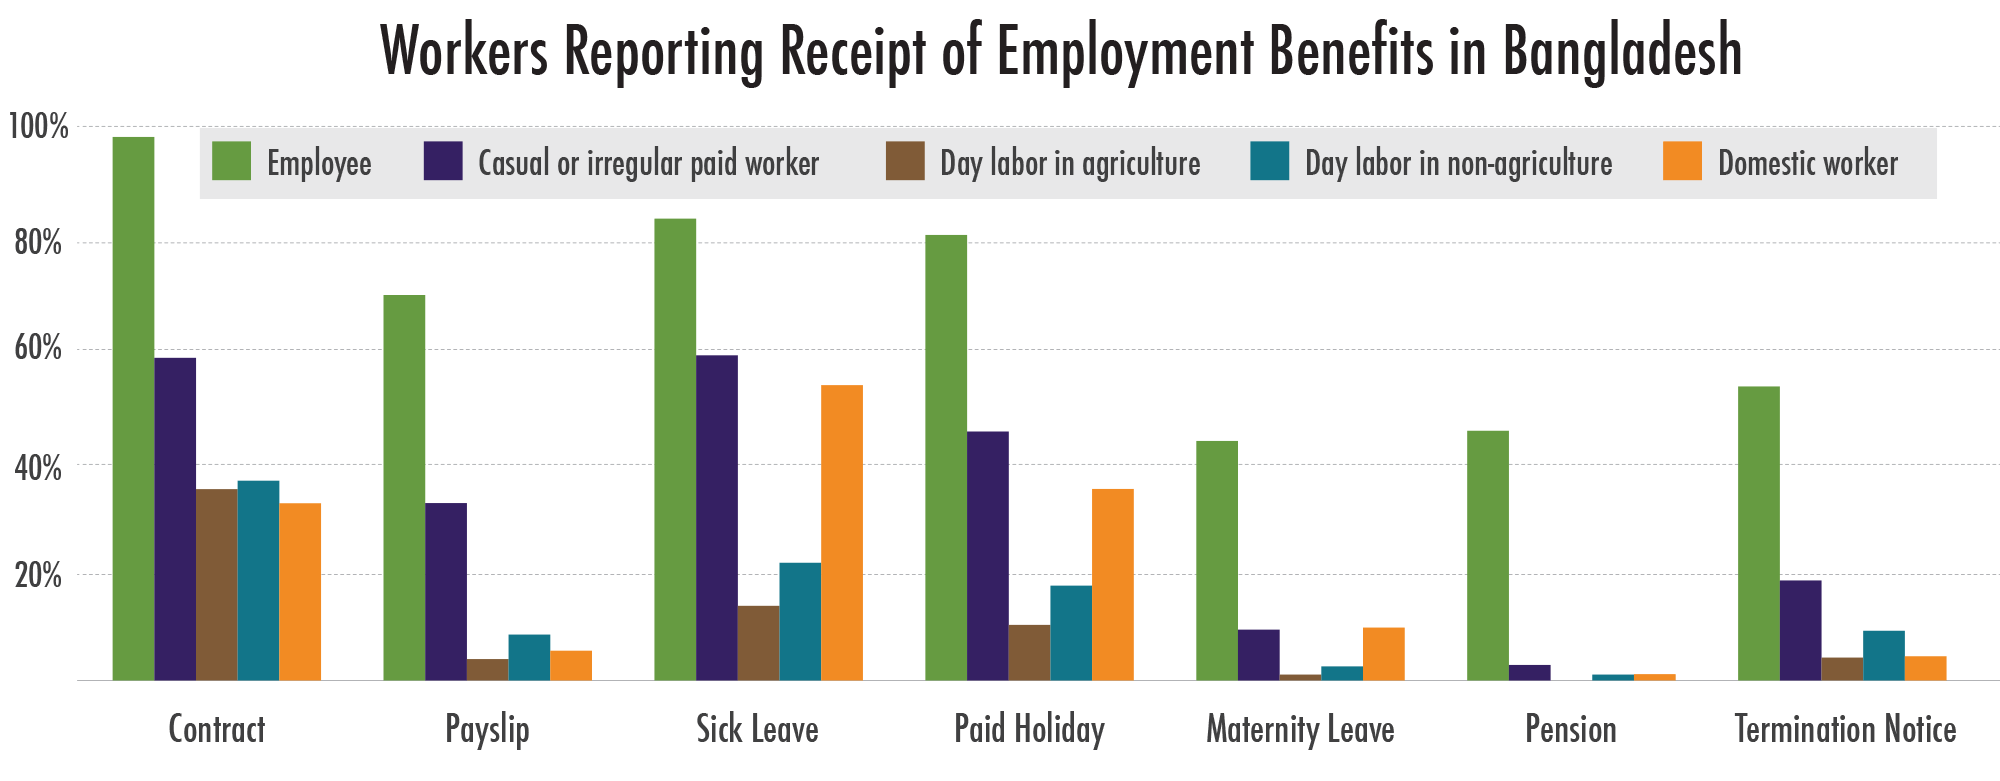 Workers reporting receipt of employment benefits in Bangladesh